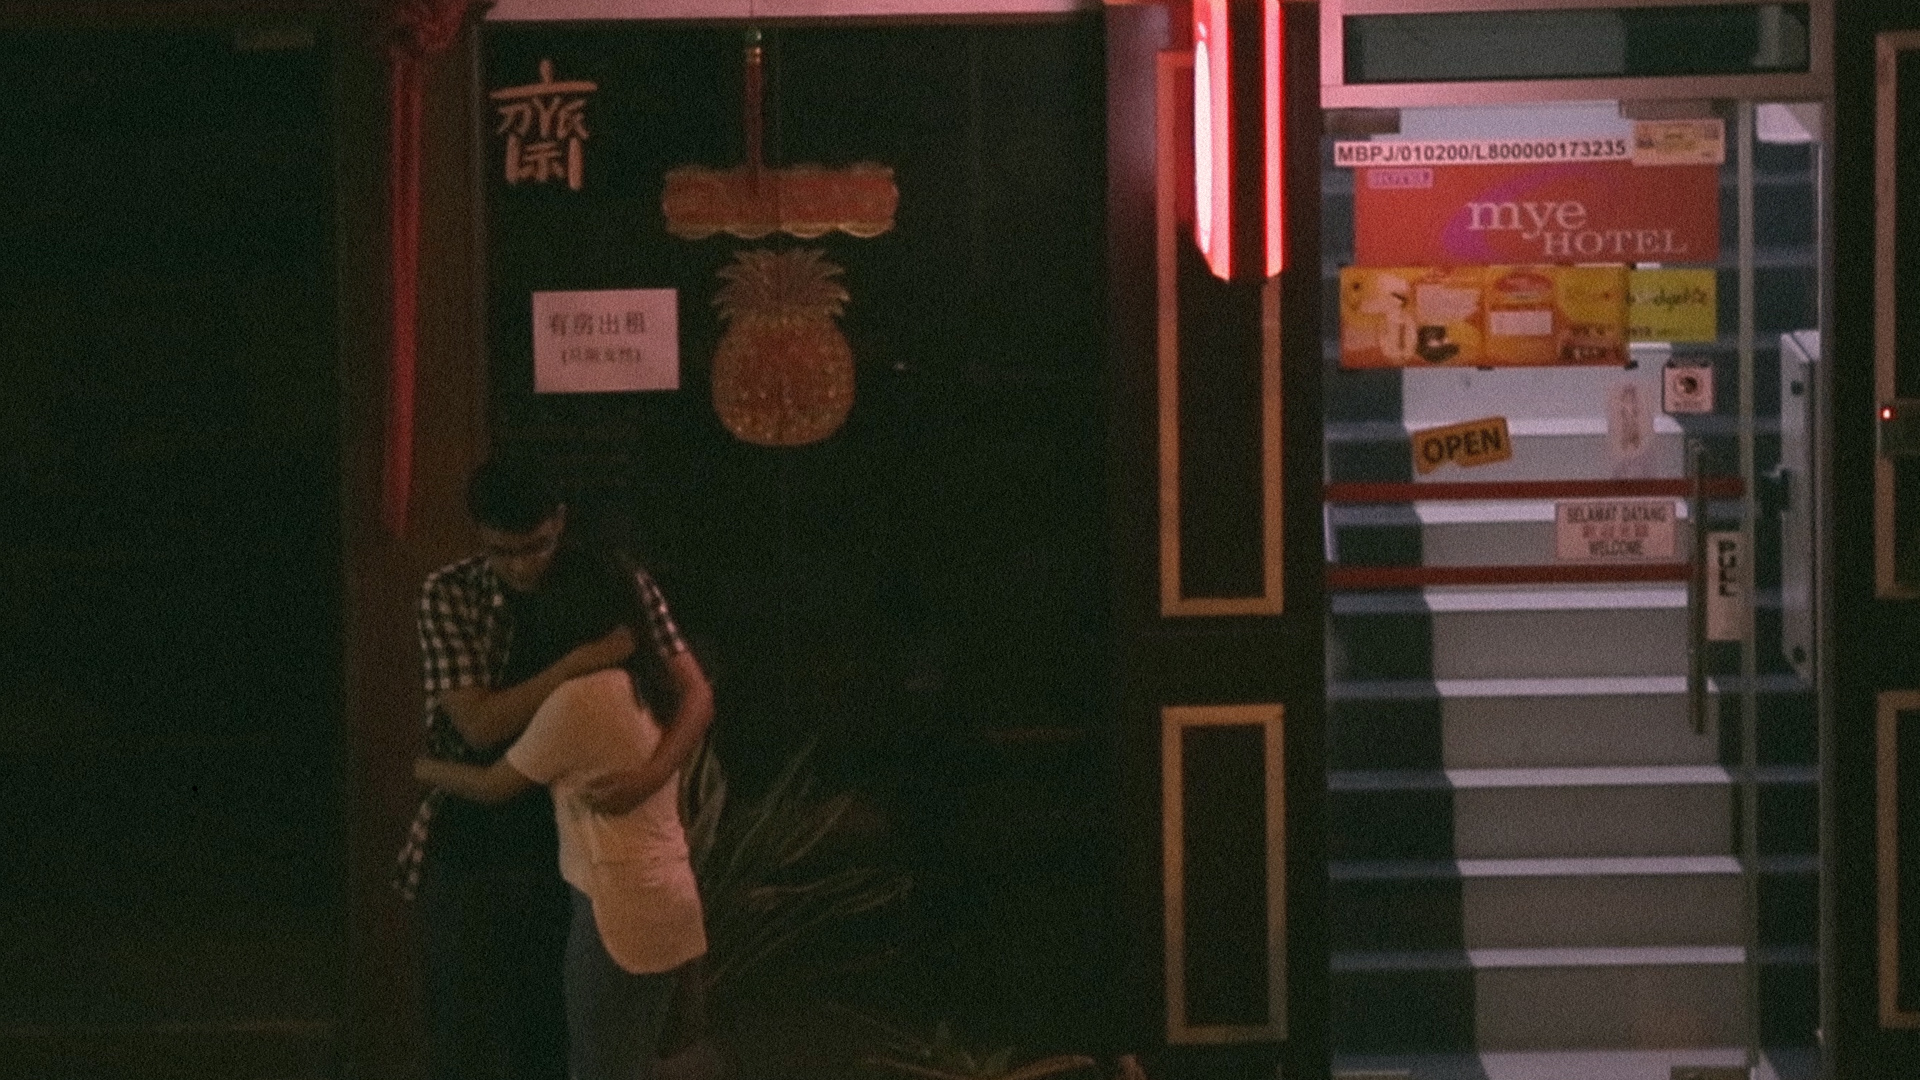 Chloe Yap Mun Ee / Malaysia / 2016 / English / 29min   A young couple arrives at a budget hotel attempting to get a room. This is the first time they will be intimate with each other. They are two young people confronting their real desire in a strange world.   Director:  Chloe Yap Mun Ee is an aspiring filmmaker and video artist, she explores emerging ways of audio-visual storytelling that engage the senses and provoke thought. She has used different methods and explored different processes in her filmmaking, and constantly searches for ways to experiment with what's possible for the 'cinematic' medium. But she mostly uses the film and video medium to confront her personal struggles and questions, currently exploring themes along the lines of sexuality, gender, intimacy and love.   Producer:  Yana Al-Yahya